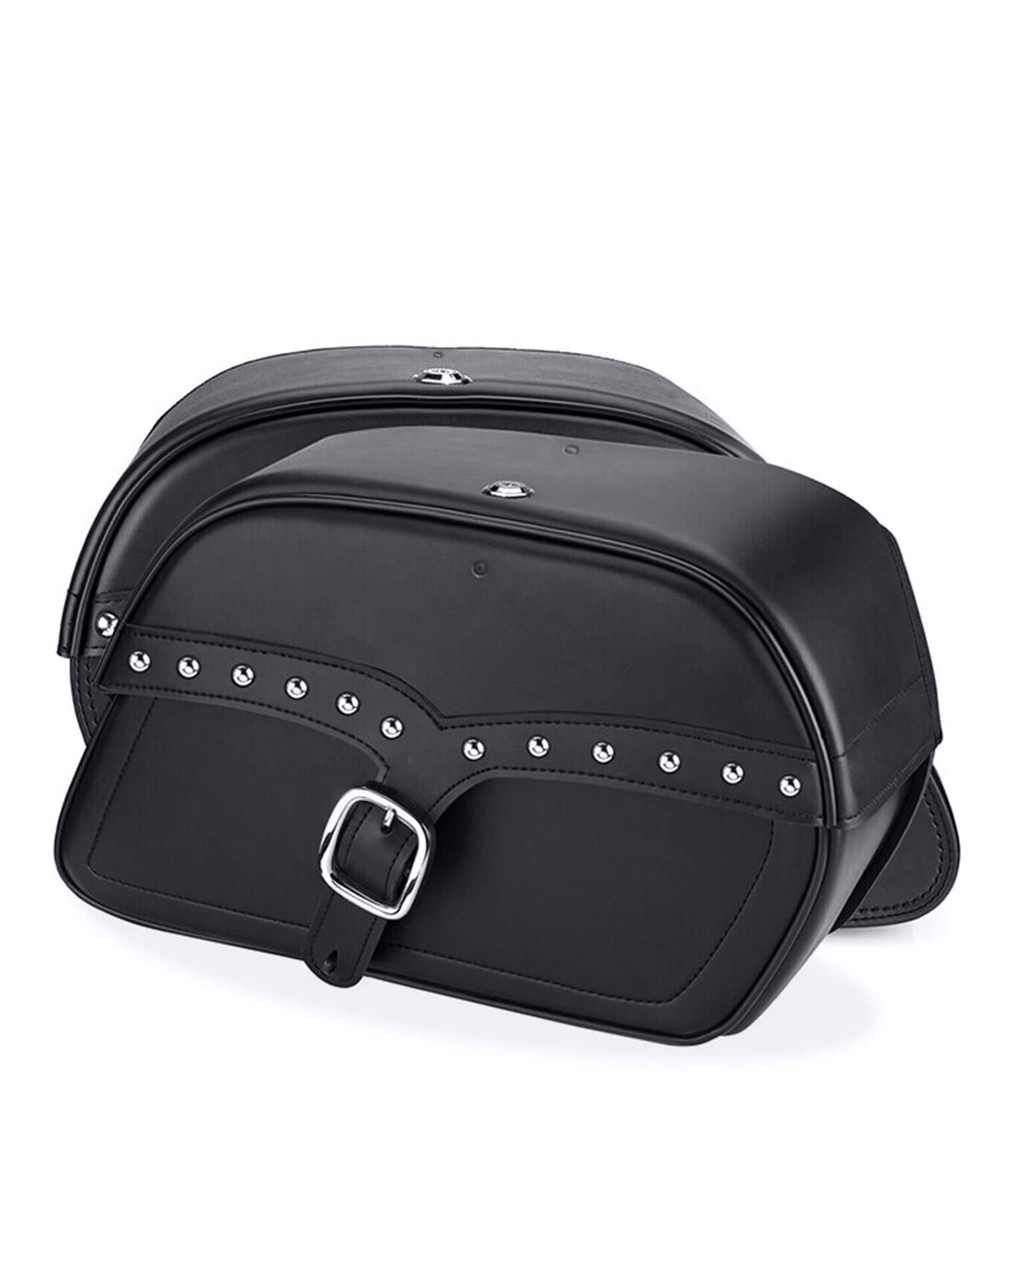 Yamaha Road Star S Midnight Large Charger Single Strap Studded Motorcycle Saddlebags Both Bags View